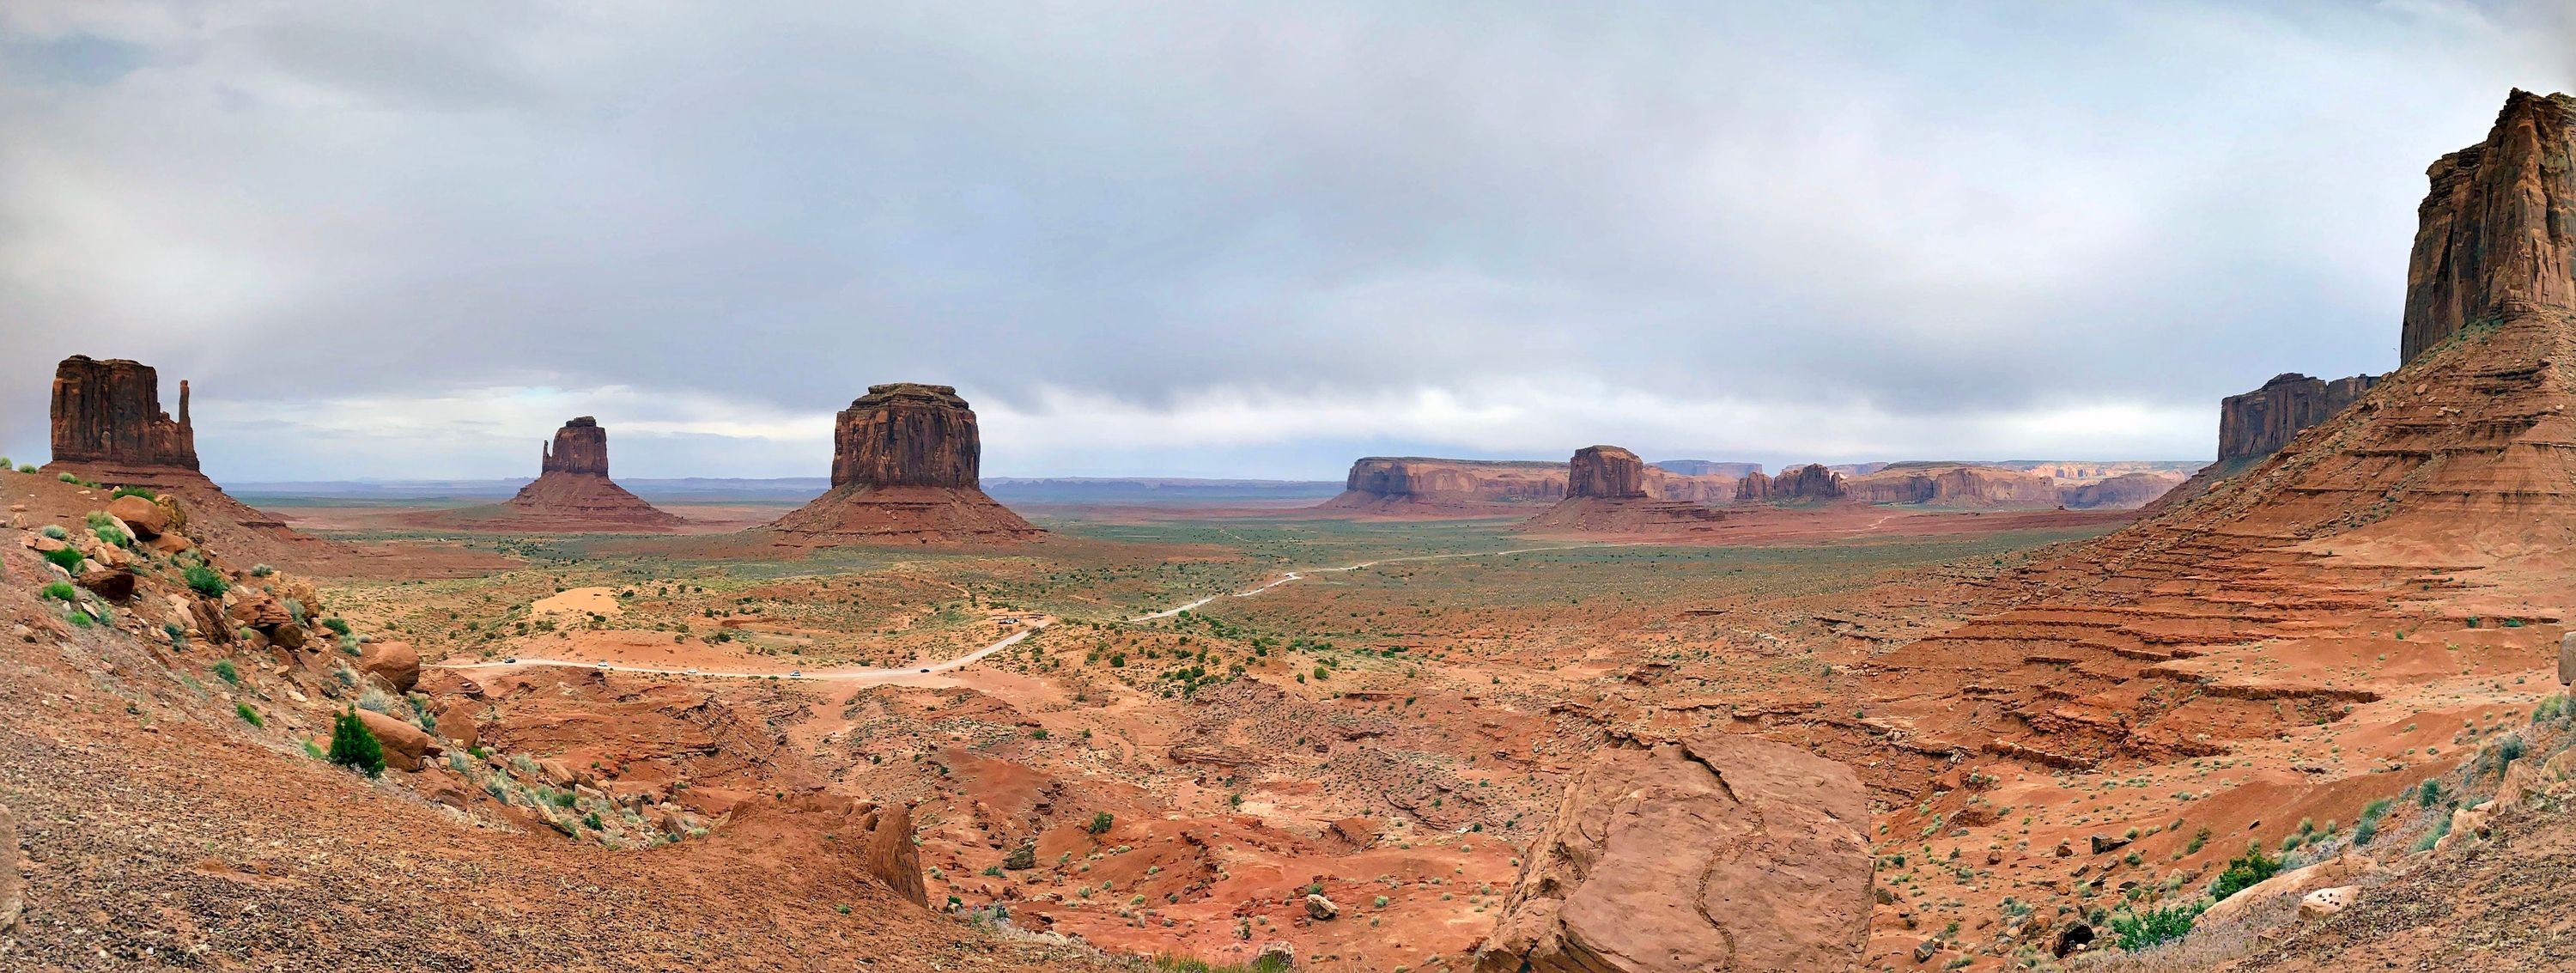 Panoramic view of Monument Valley from a balcony at The View Hotel at Monument Valley